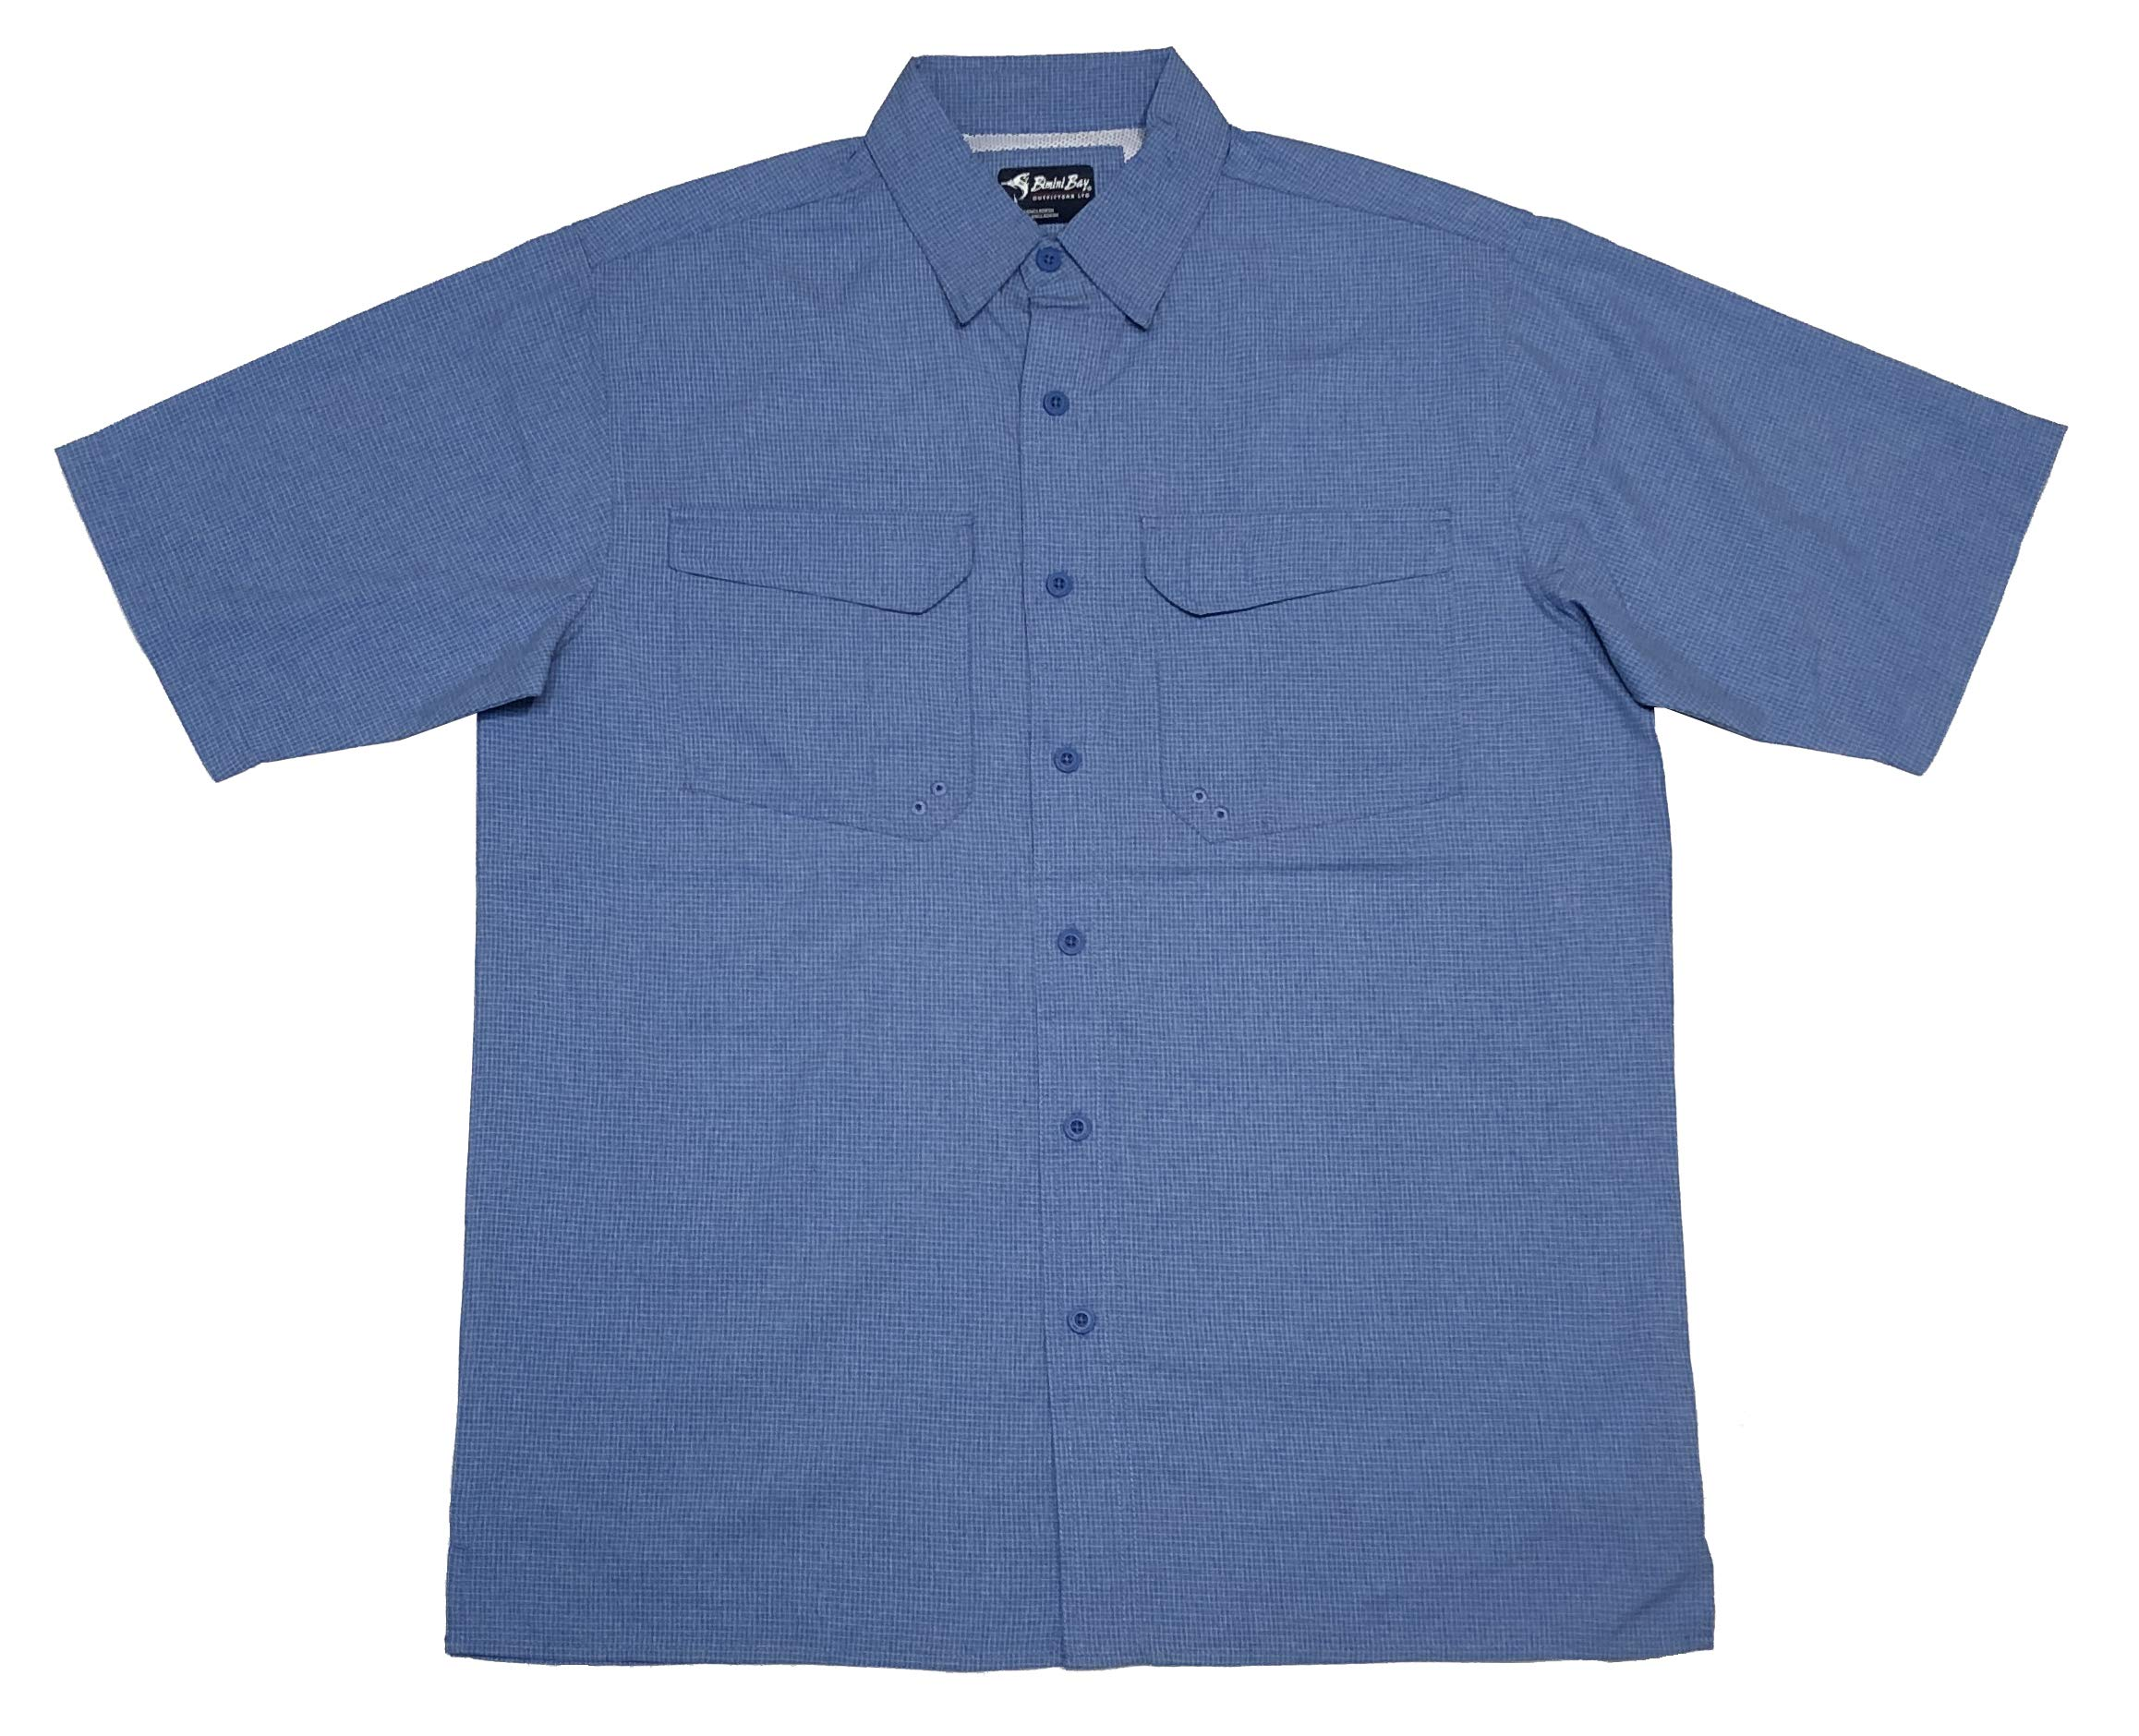 Bimini Bay Outfitters 'The Largo' Short Sleeve Shirt with BloodGuard (Marina Blue, X-Large) by Bimini Bay Outfitters